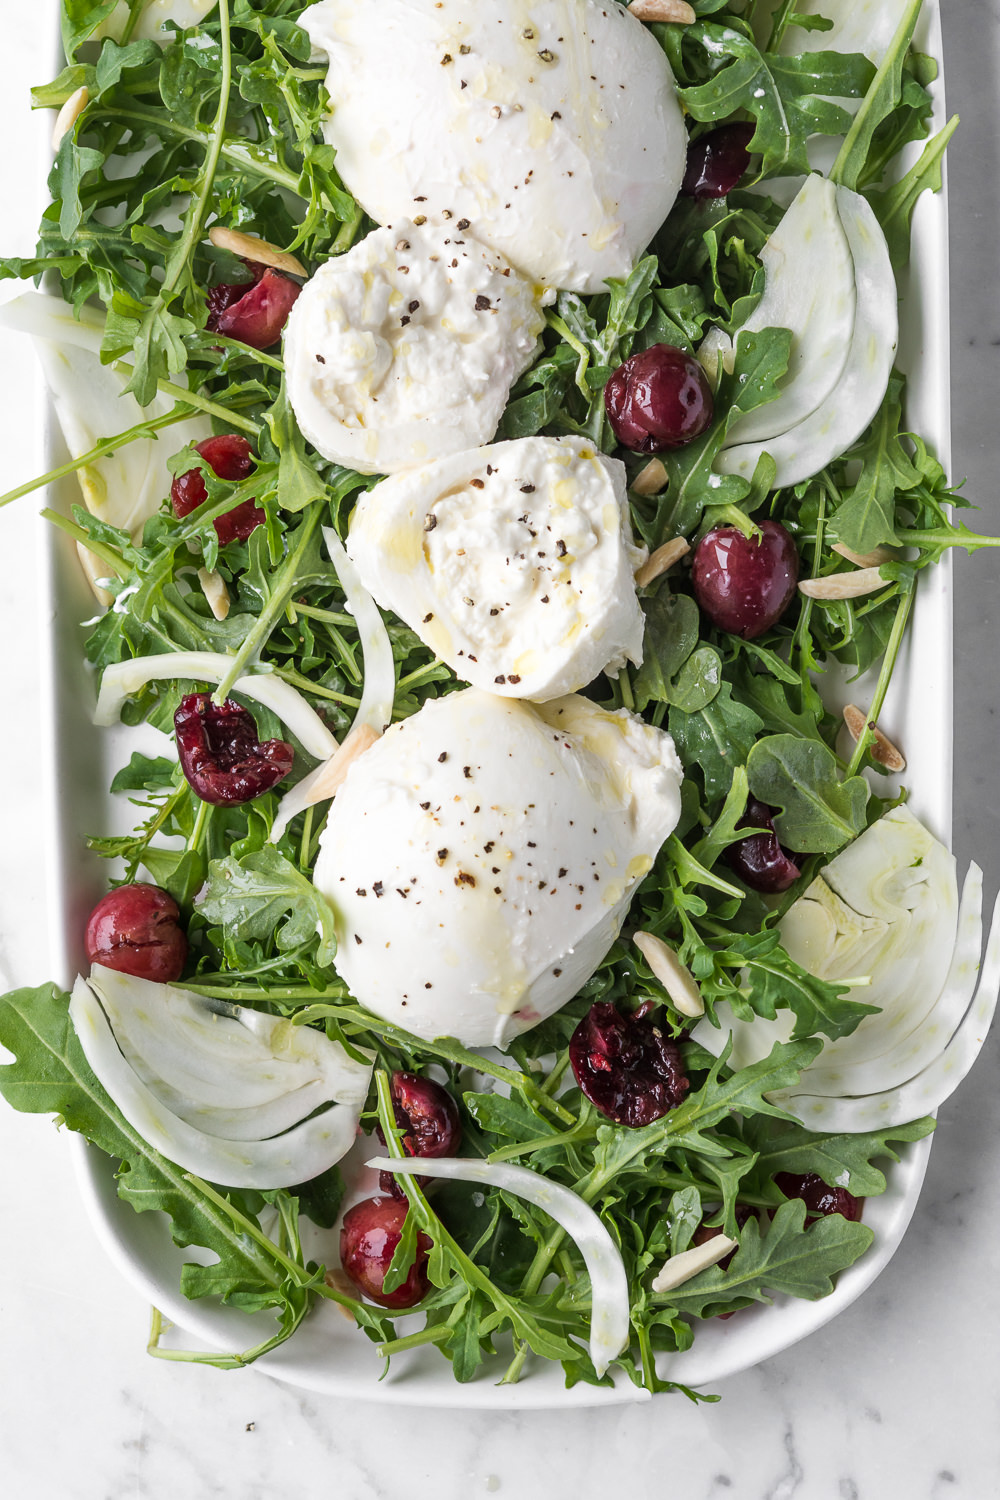 arugula salad with pickled cherries, burrata, fennel and almonds